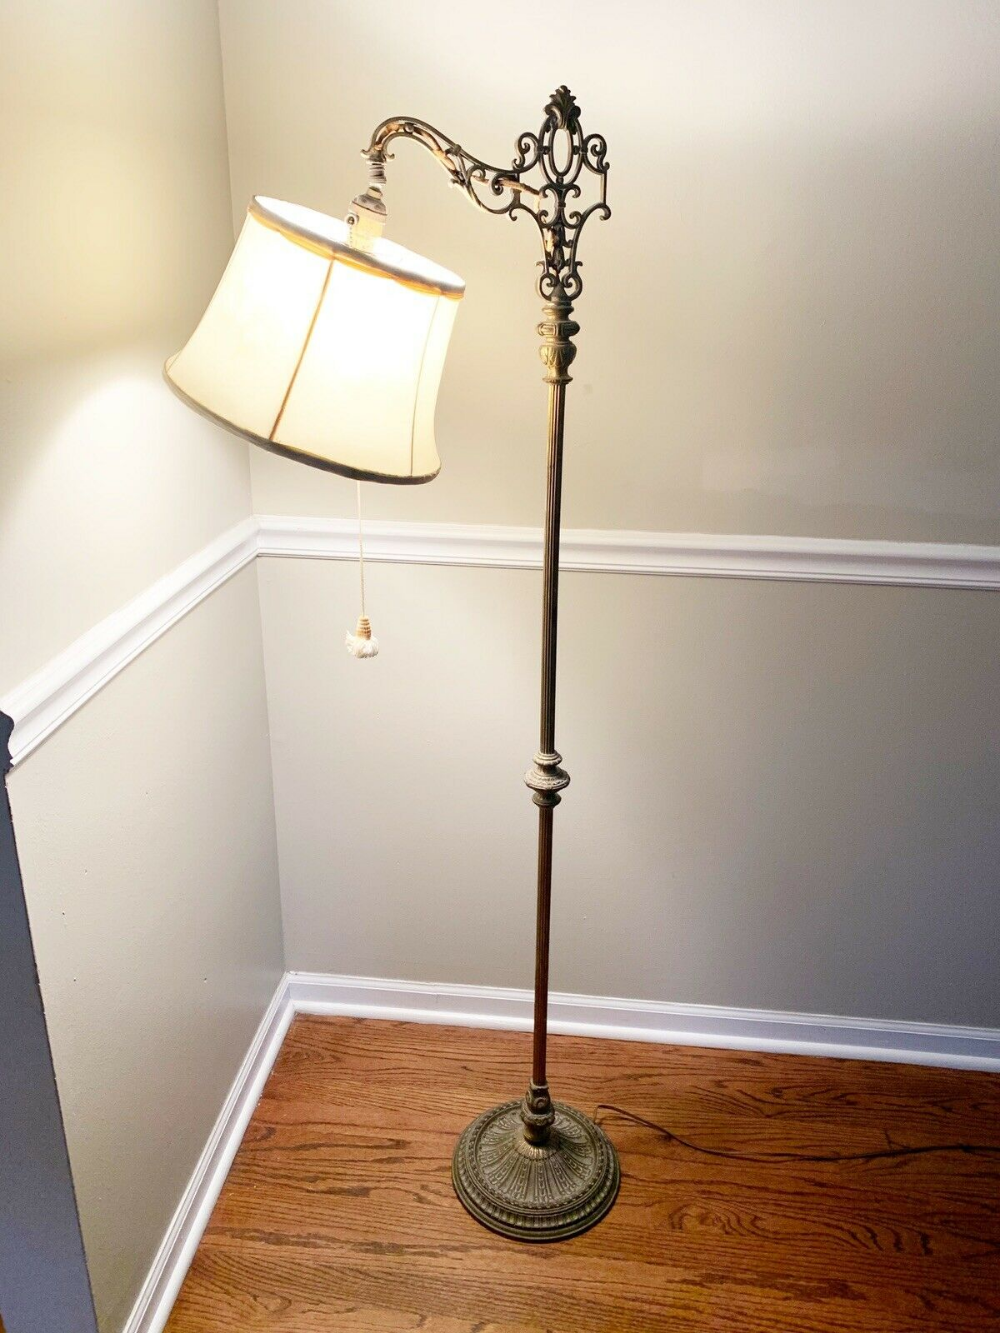 Findlay Spanish Revival 1920s Bridge Arm Floor Lamp Antique Scrollwork Designers In 2020 Metal Lamp Shade Candle Lampshade Glass Lamp Shade